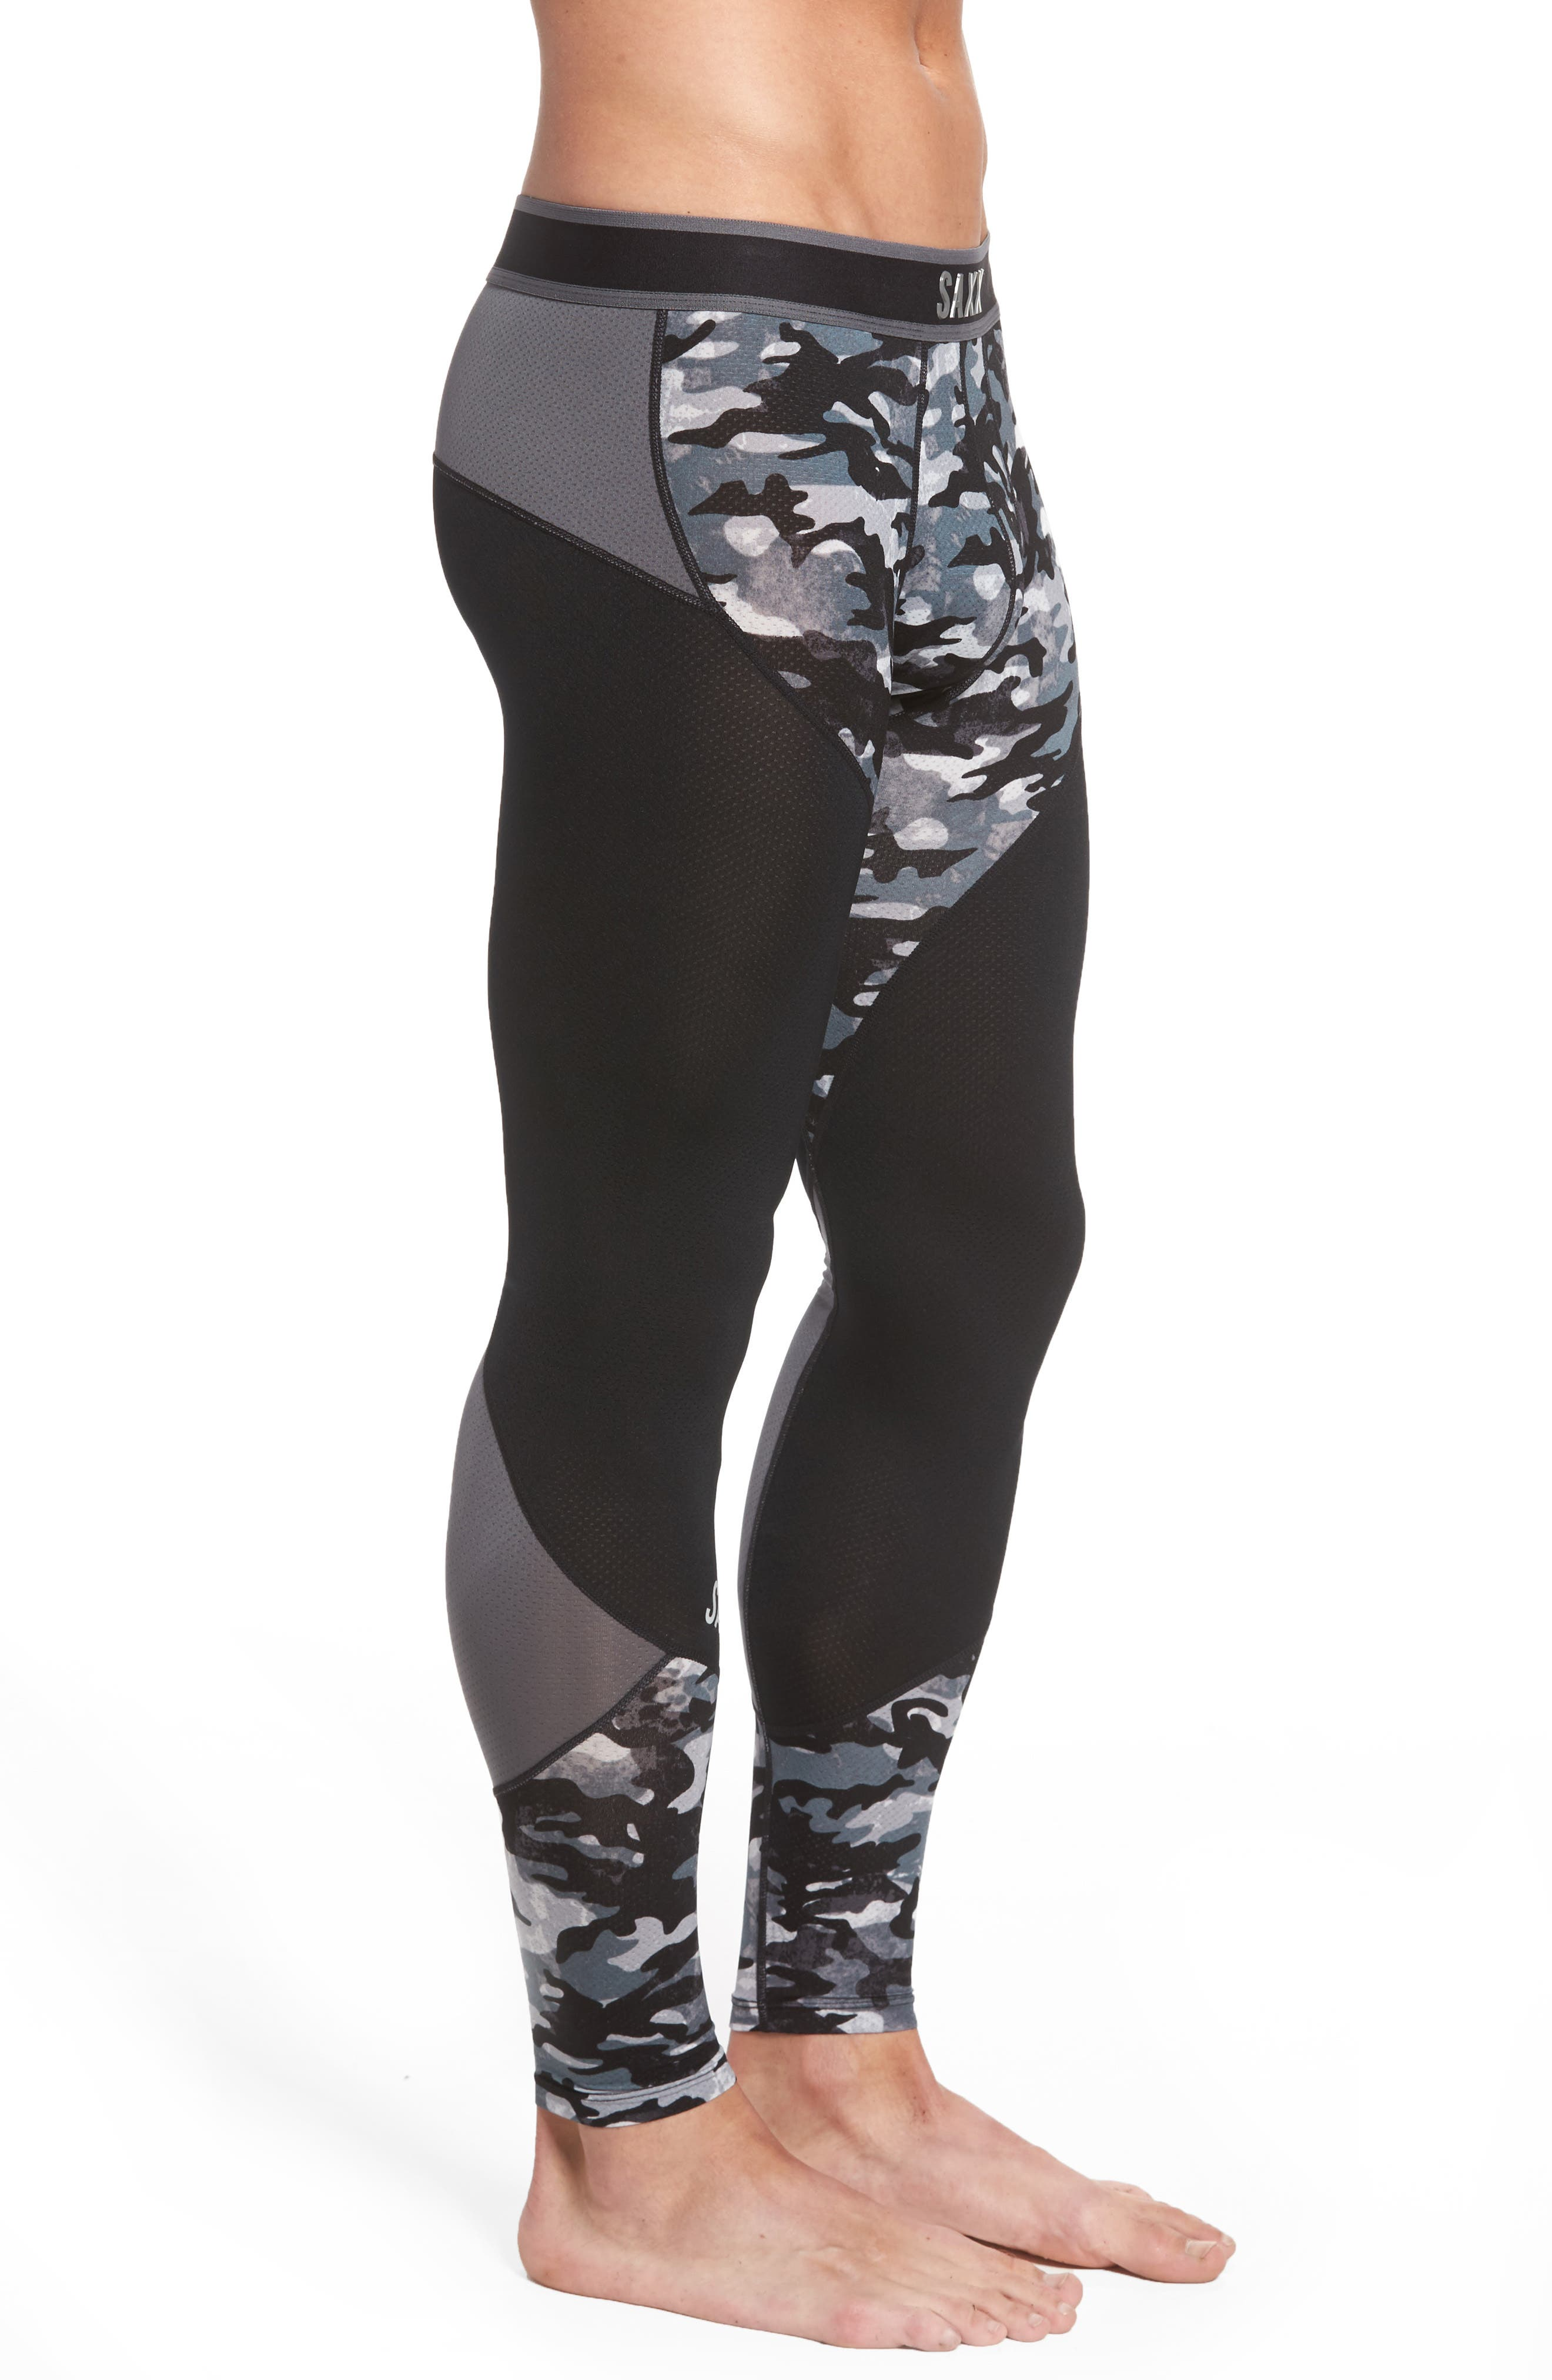 Kinetic Camo Colorblock Athletic Tights,                             Alternate thumbnail 3, color,                             062